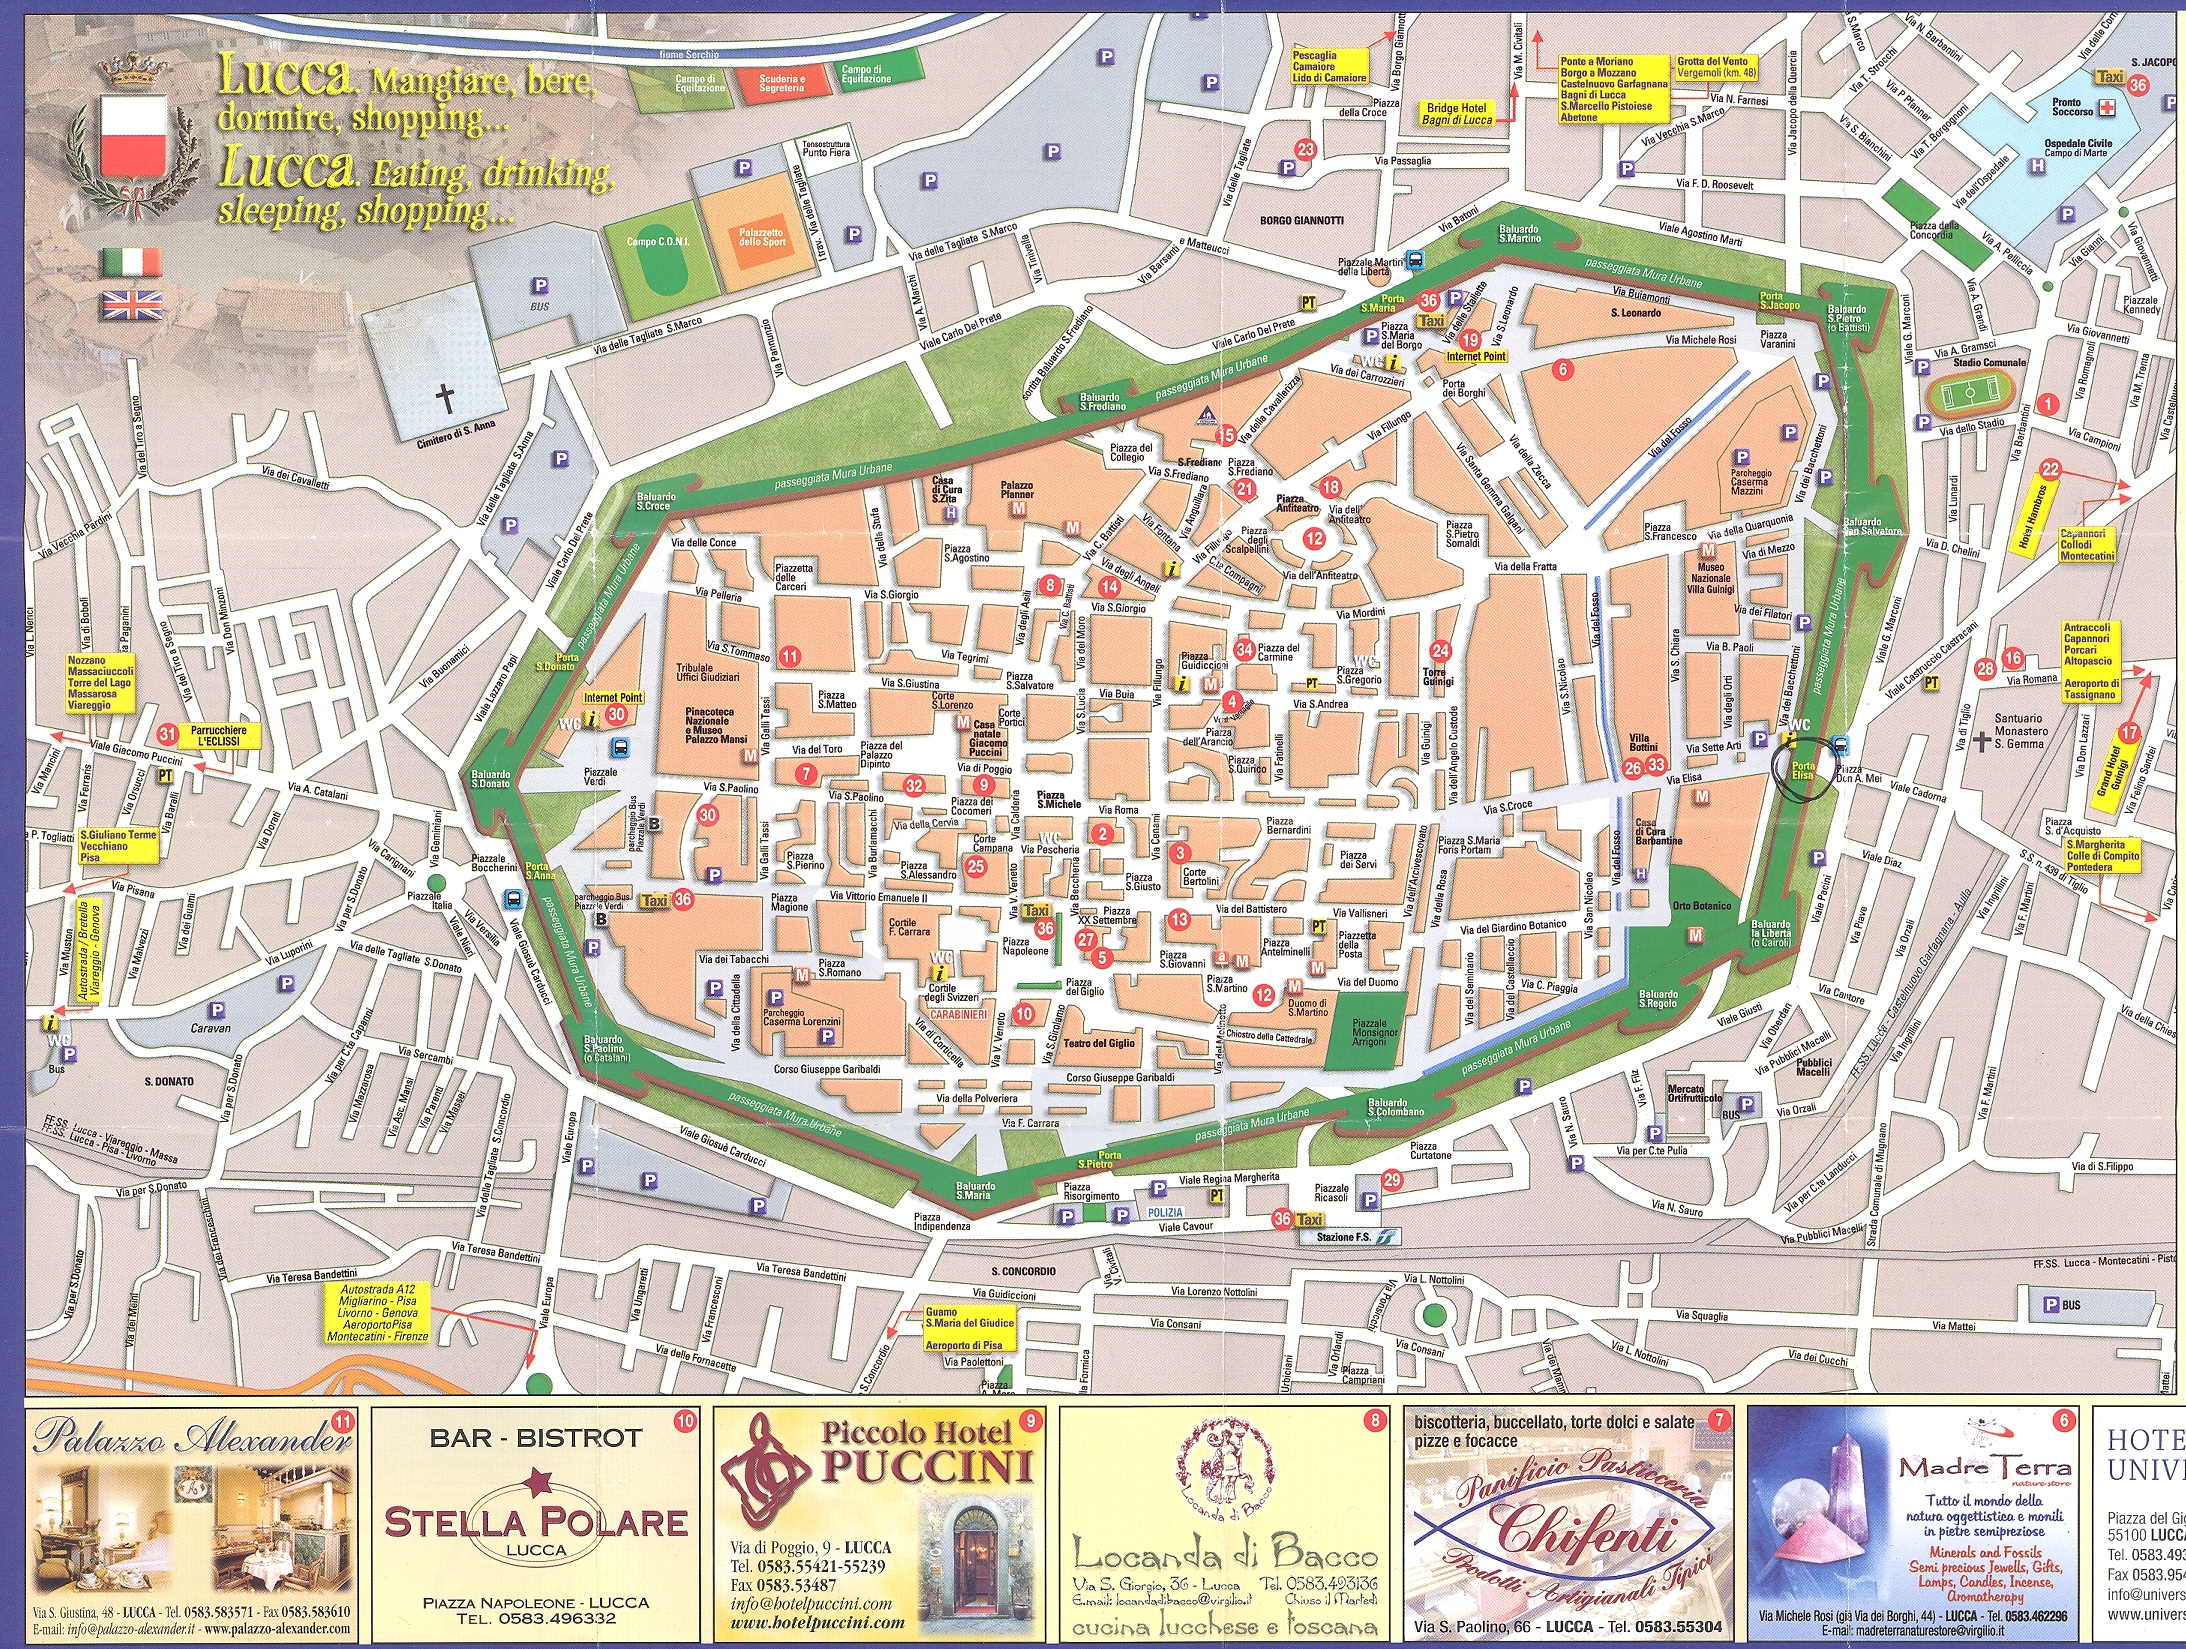 Lucca map see map details